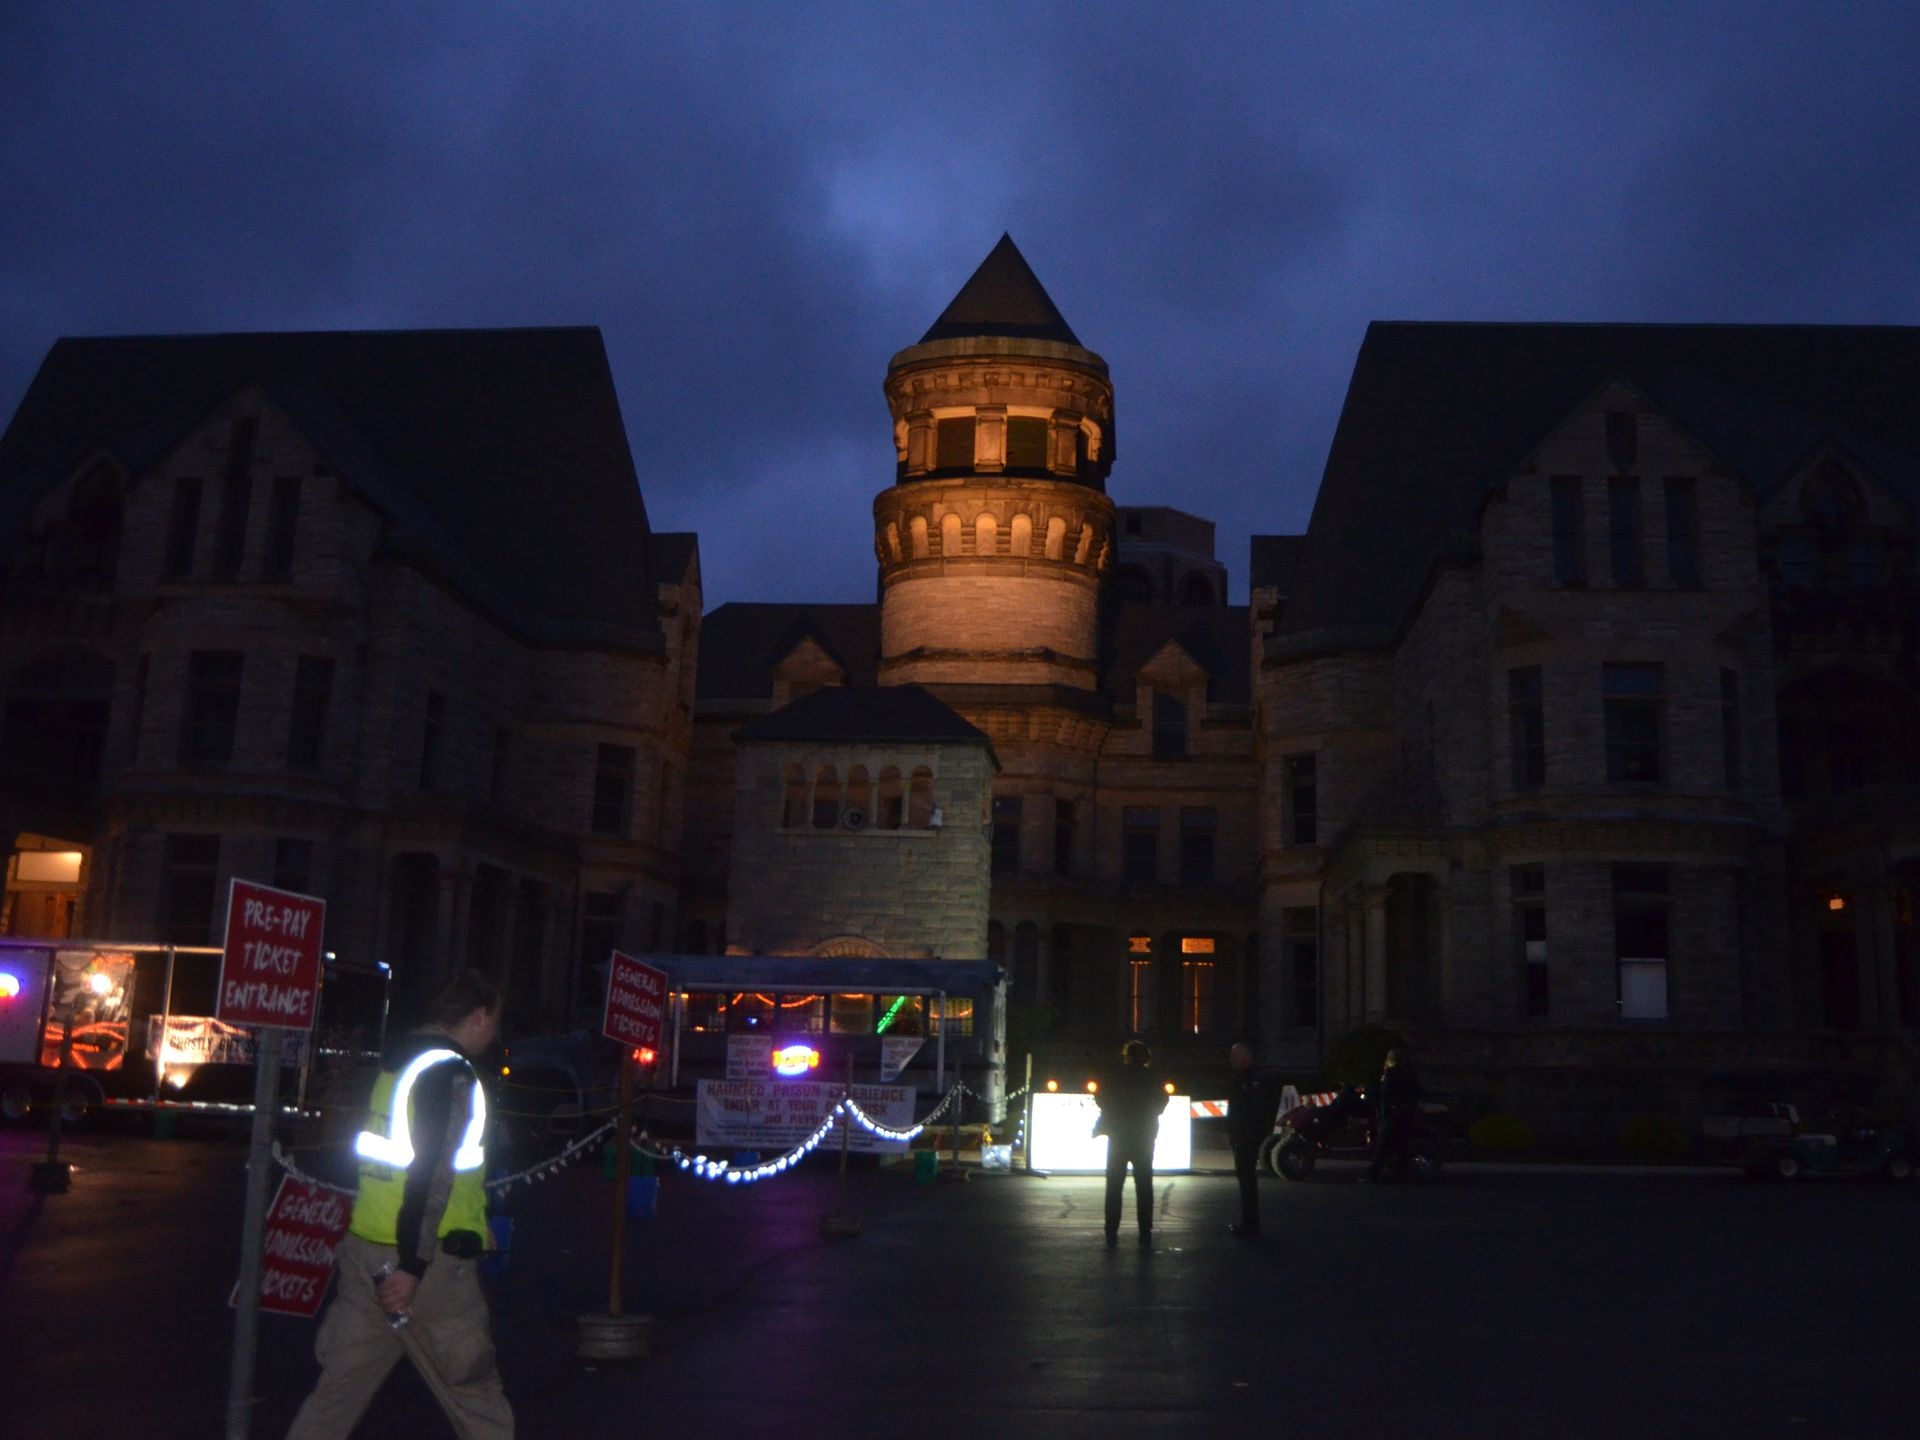 photos | 2015 haunted prison experience at mansfield reformatory